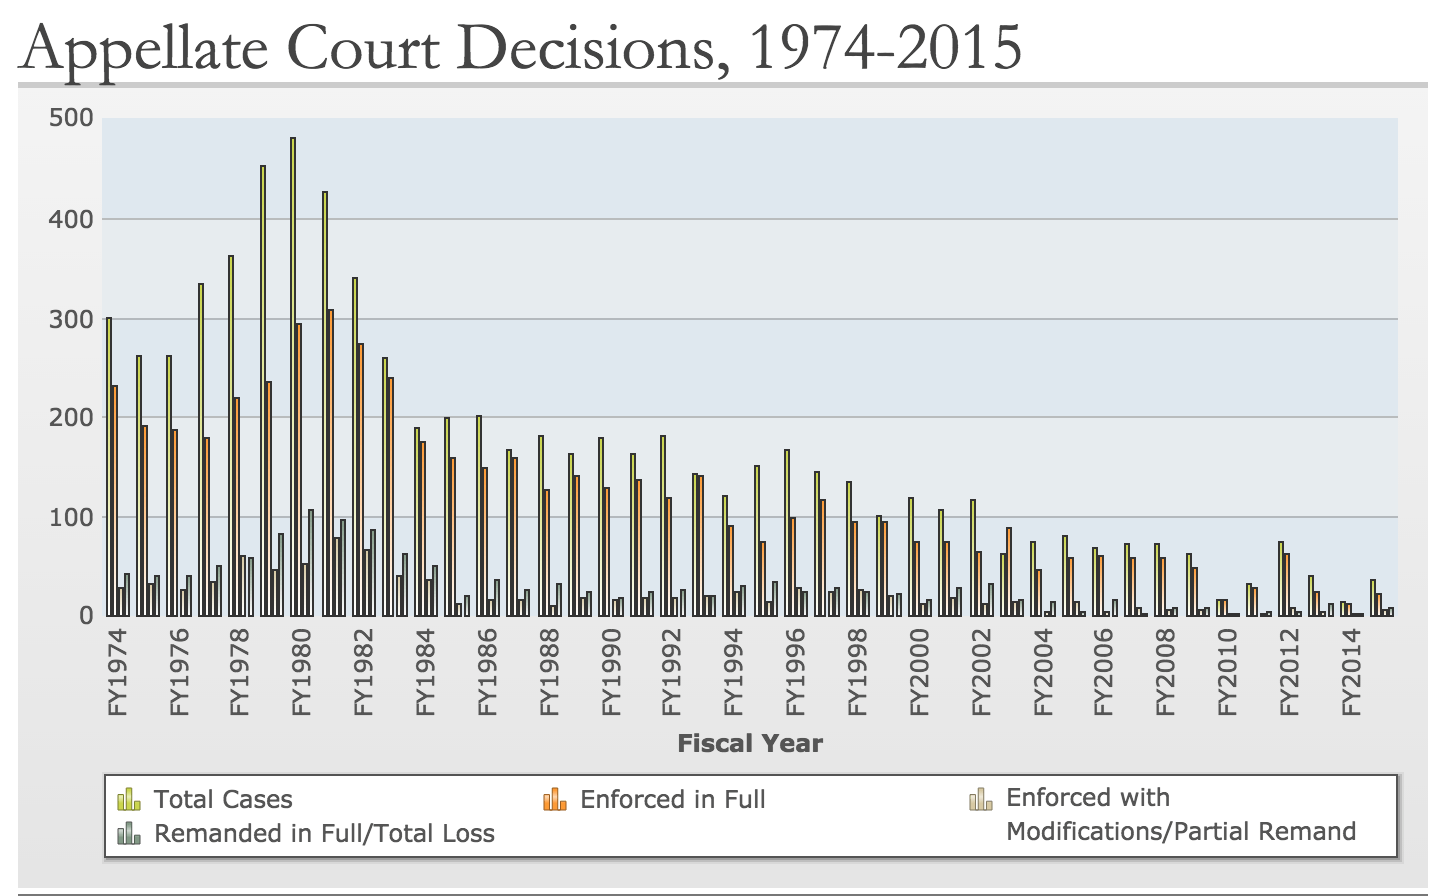 A chart showing Appellate Court decisions of NLRB rulings between 1975 and 2015.